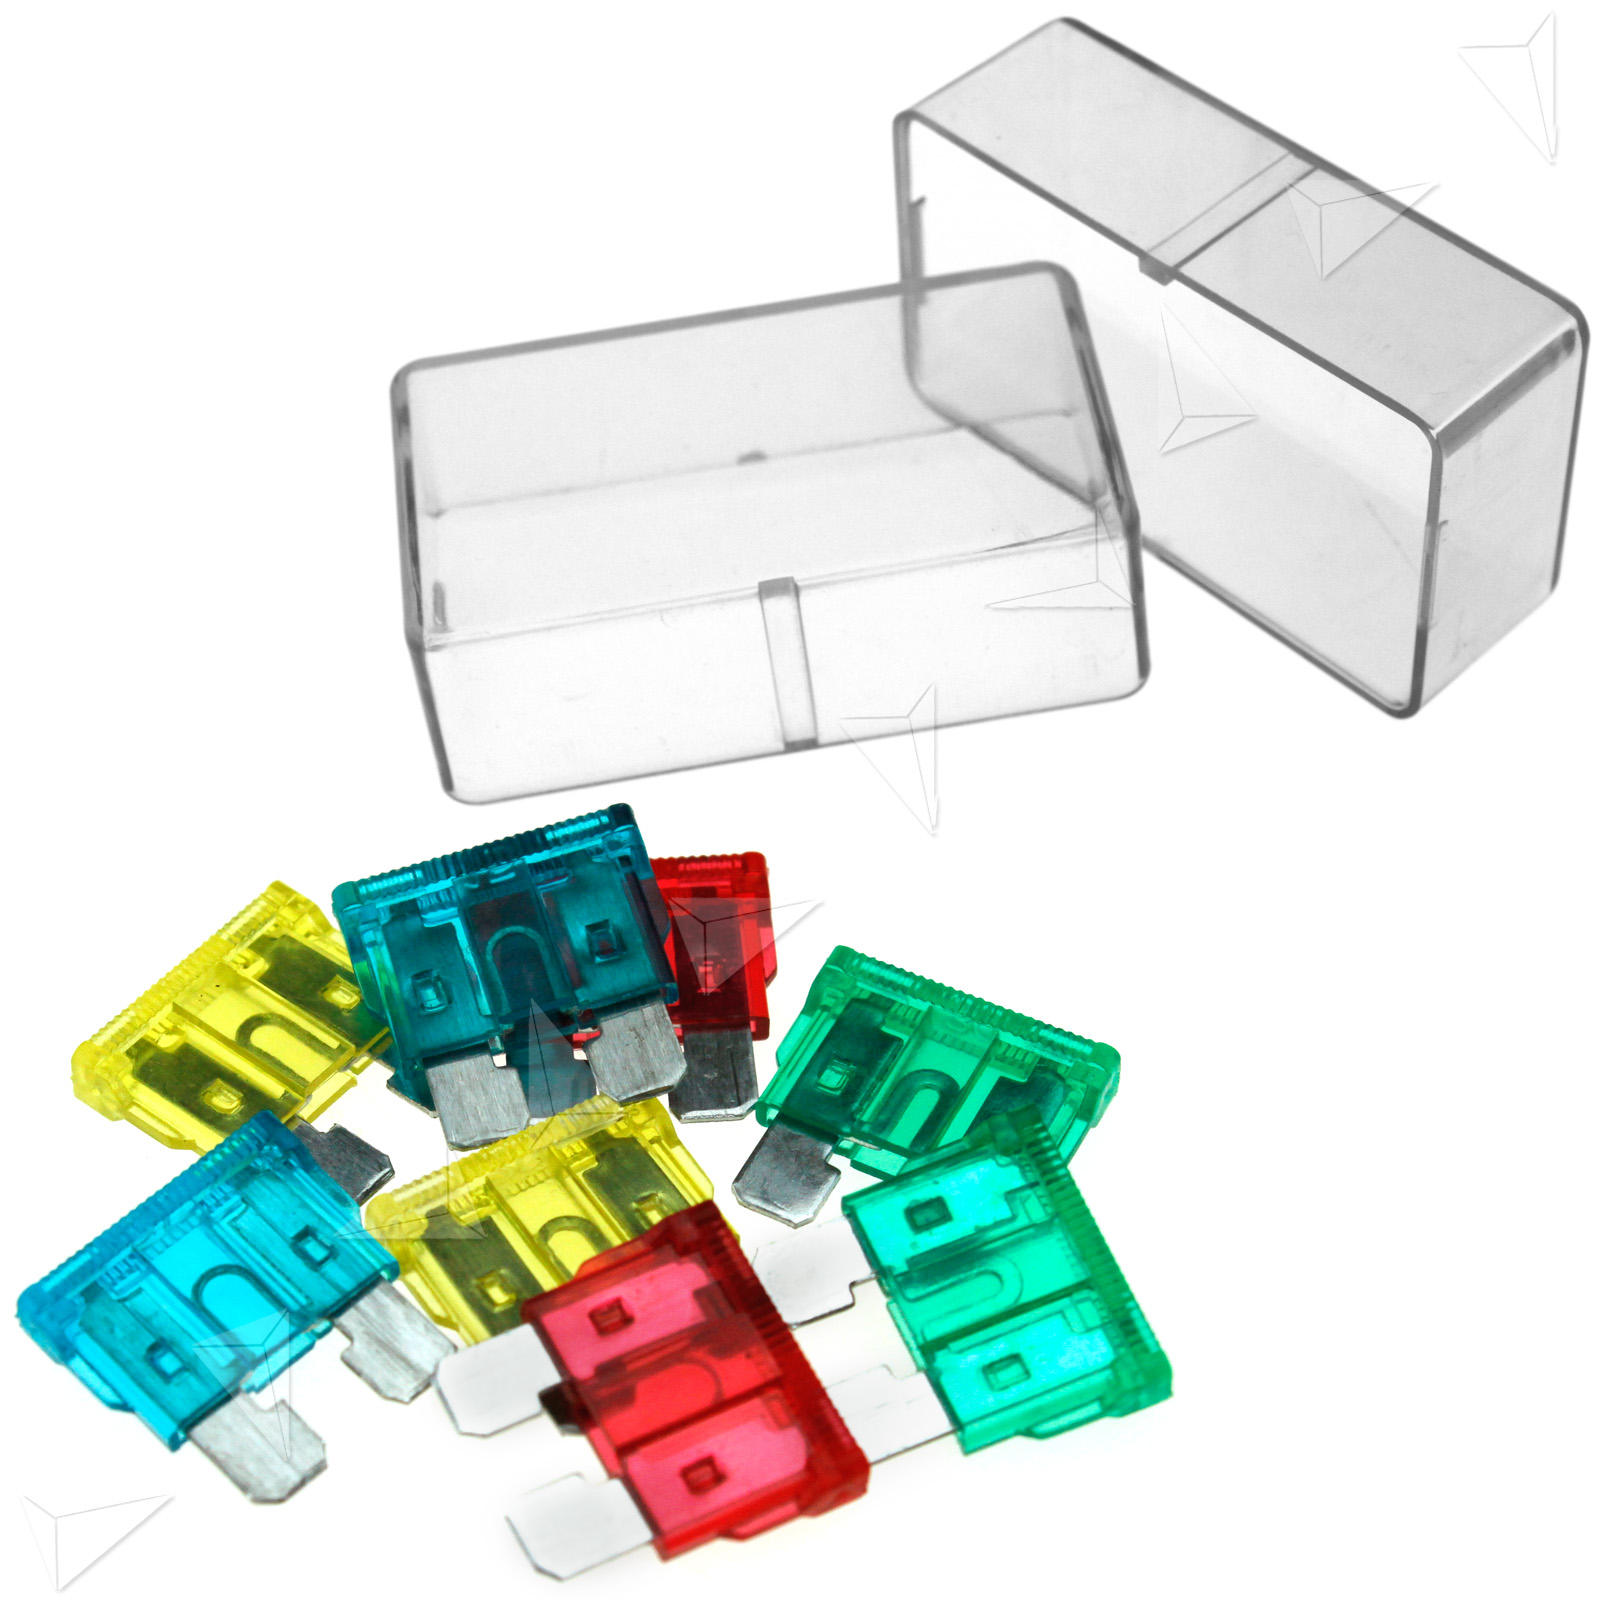 12 24v Universal Car Truck 8 Way Circuit Standard Blade Fuse Box Holder Block